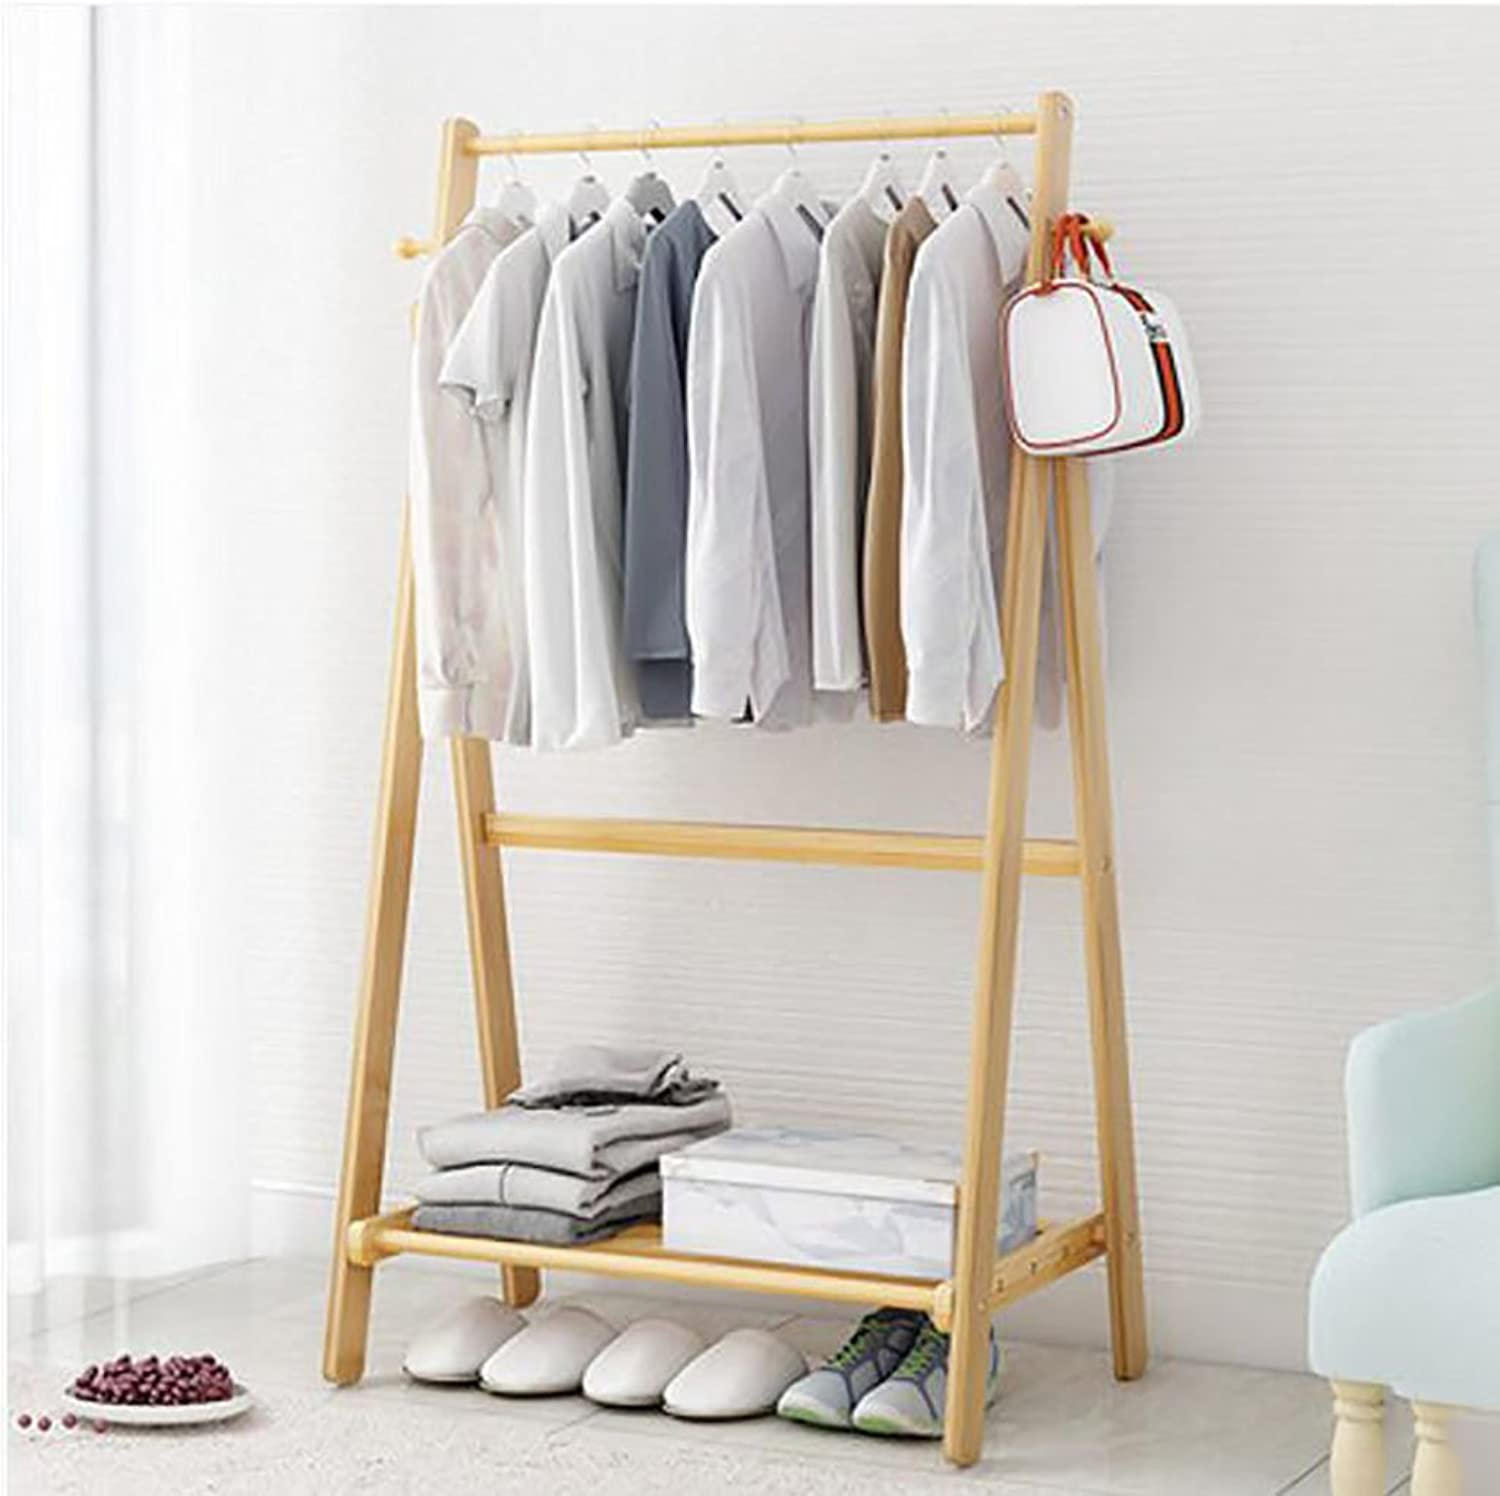 Hanger Floor Bedroom Modern Simple Coat Rack Floor Bamboo Set Rack Mobile Clothes Hanger (color   A, Size   150  60  51cm)